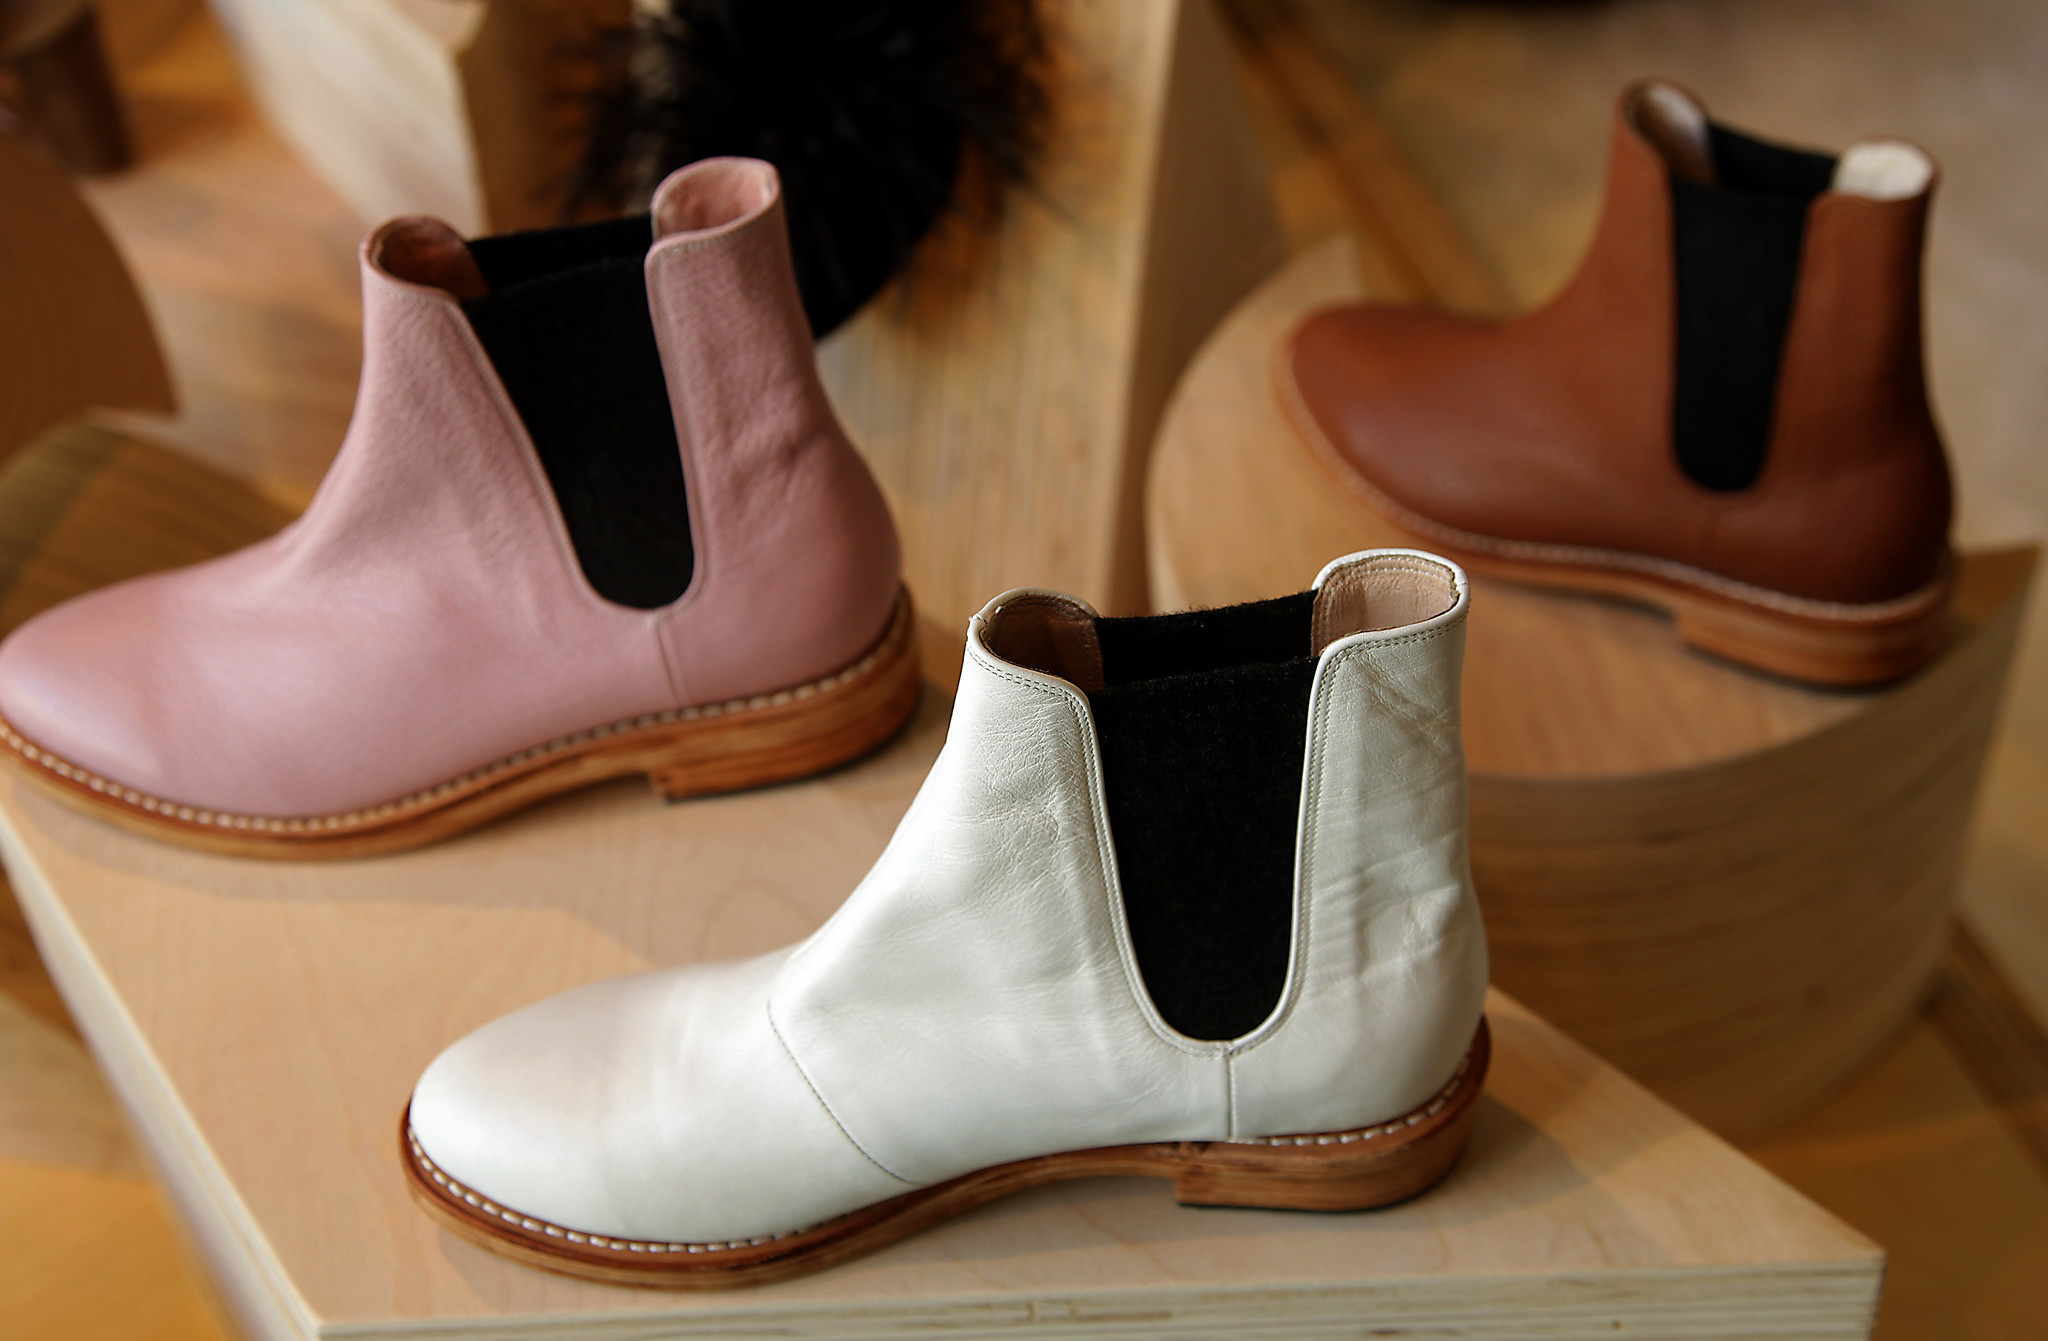 Booties from Ventura-based footwear designer Charlotte Stone.